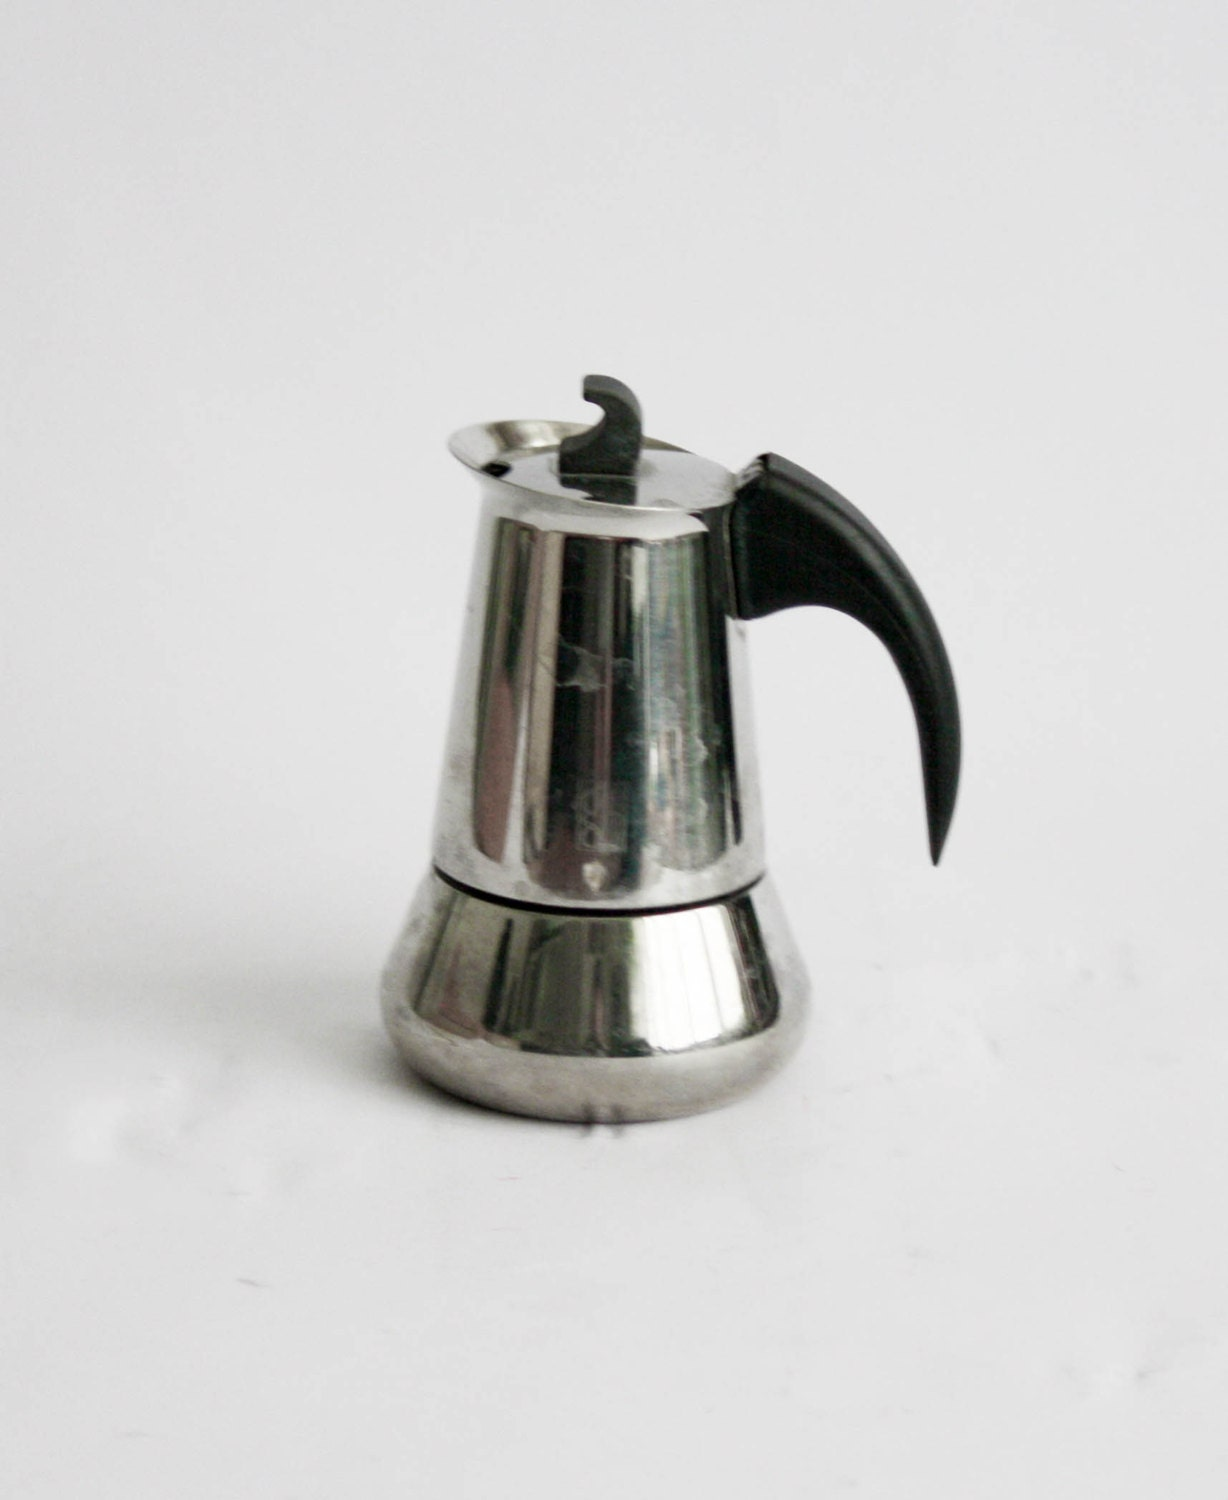 Vintage Italian Coffee Maker Stainelss Steel 2 Cups Made